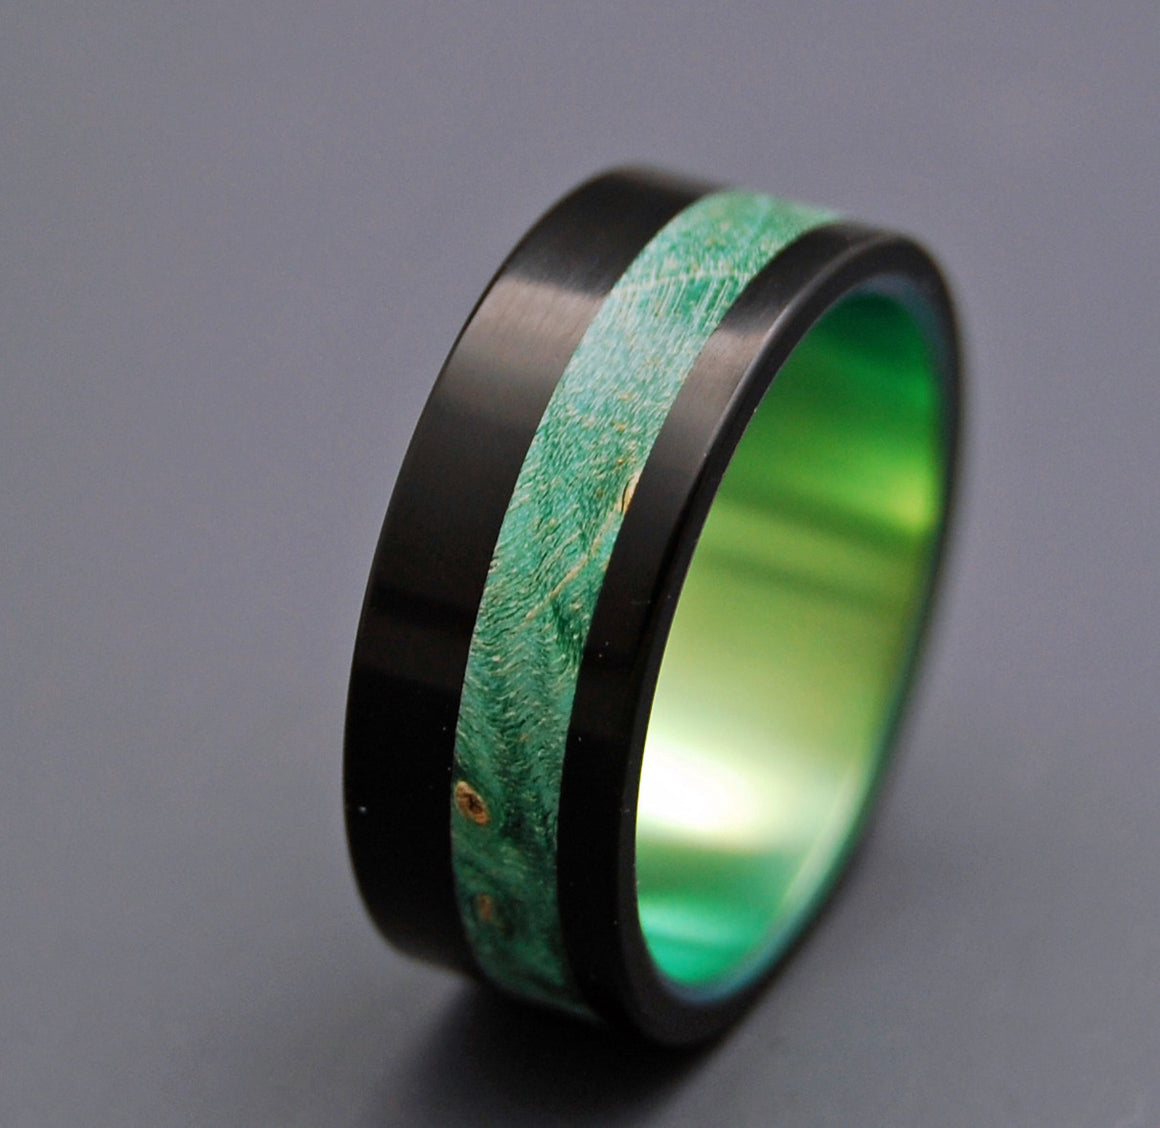 Galway | Titanium Wooden Wedding Rings - Minter and Richter Designs